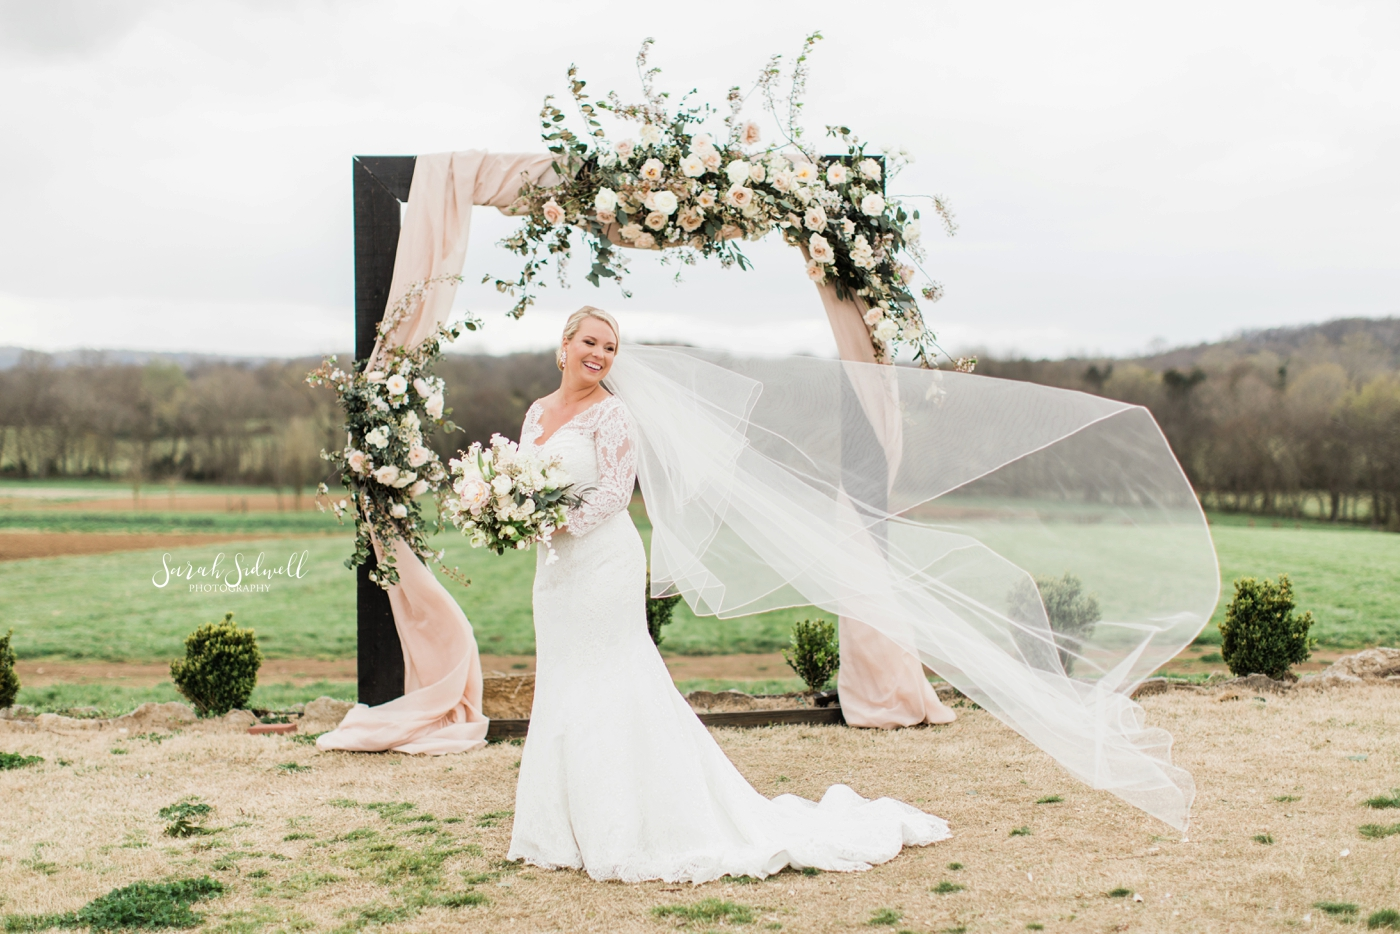 Allenbrooke Farms Wedding